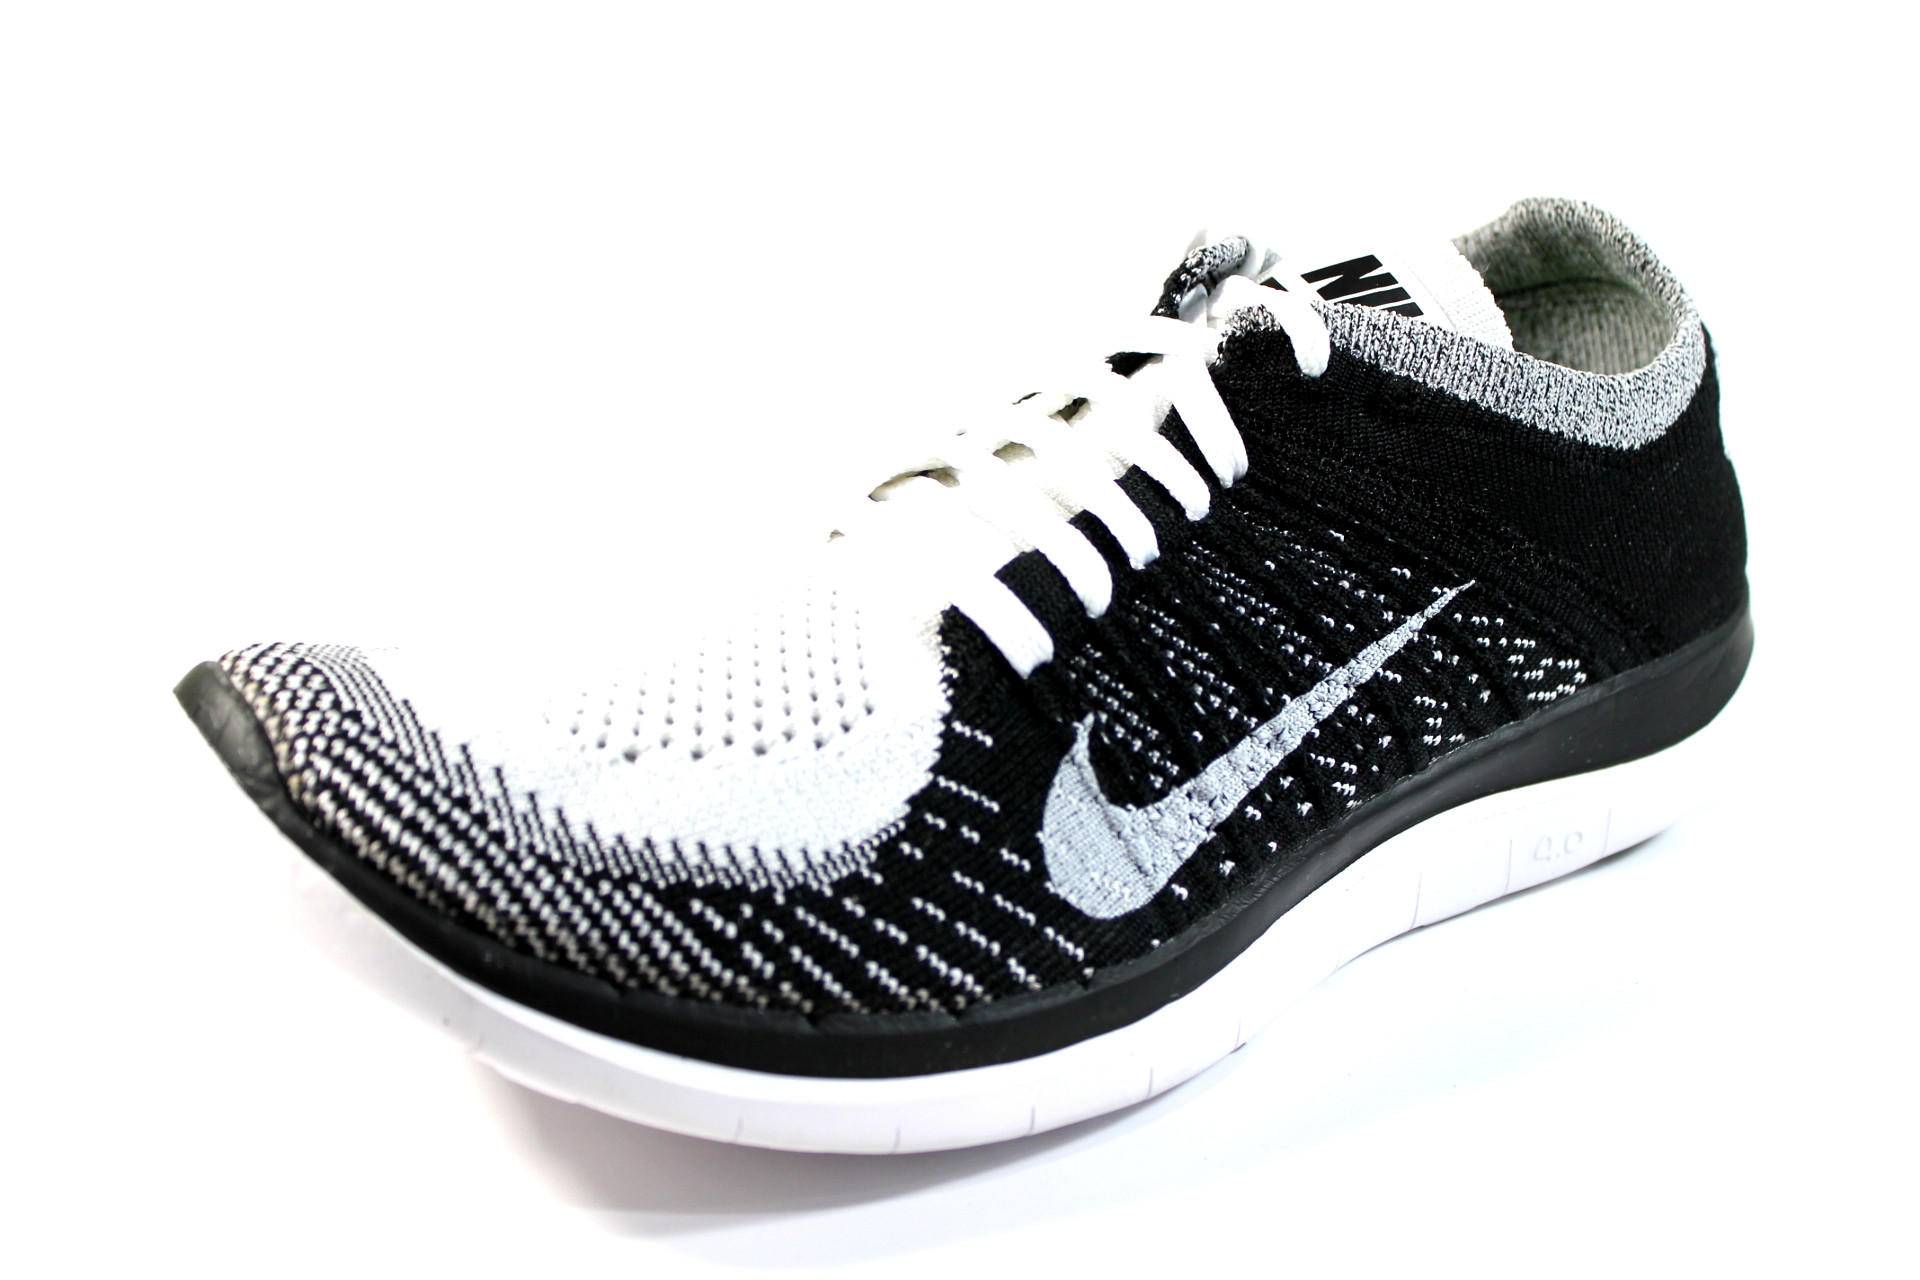 hot sales uk trainers nike free shoes womens diamond wanelo.co 03b7a4cef0 4bc005452b7a